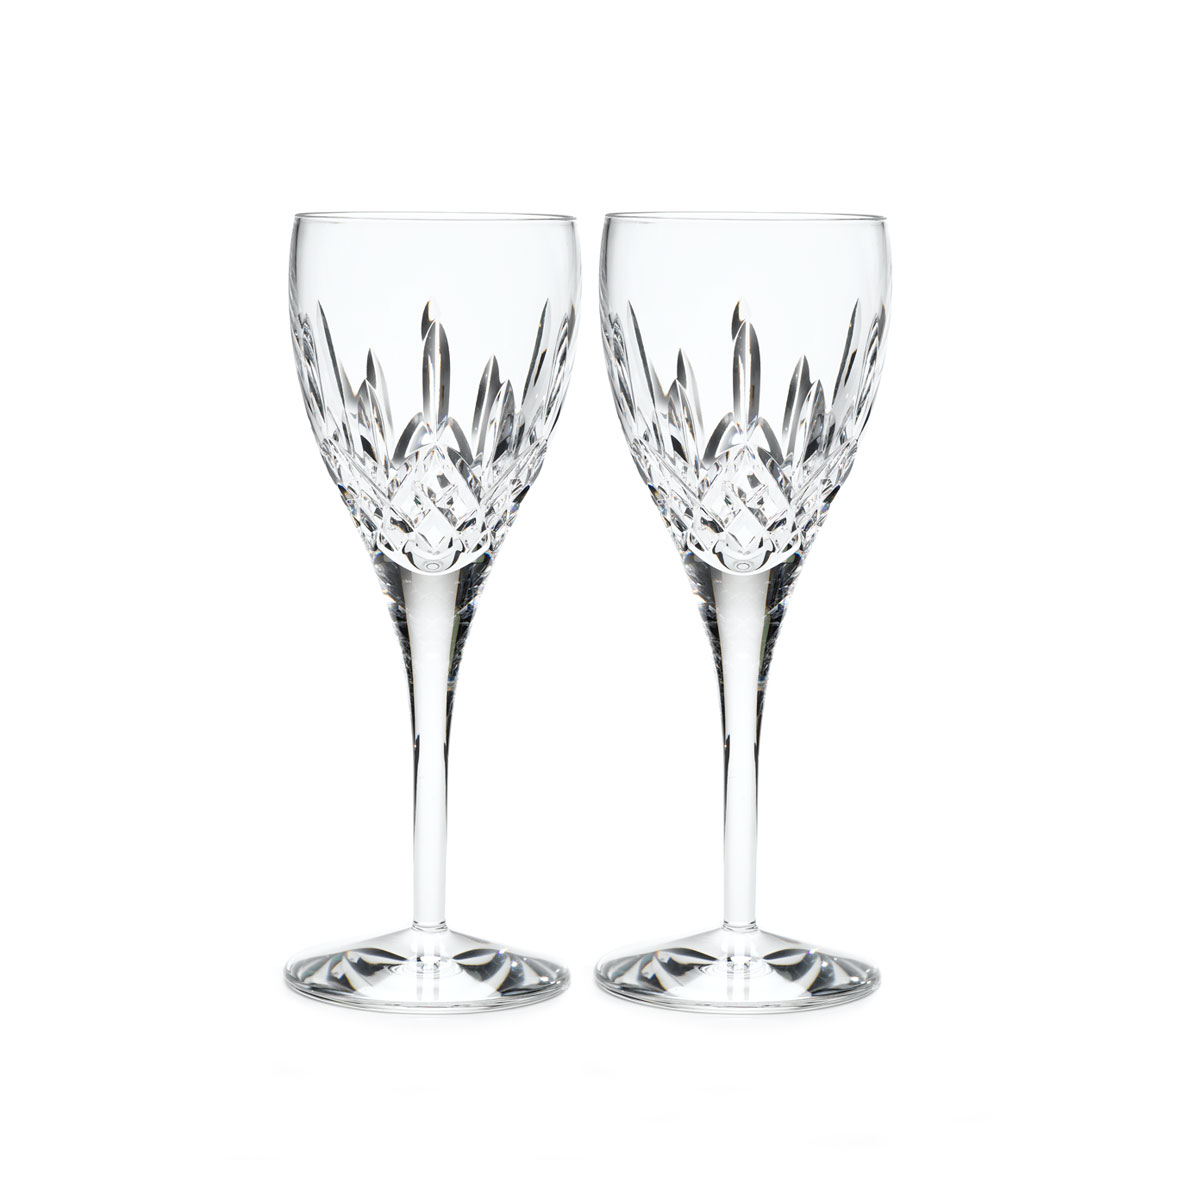 Waterford Crystal, Lismore Nouveau Crystal Goblet, Pair